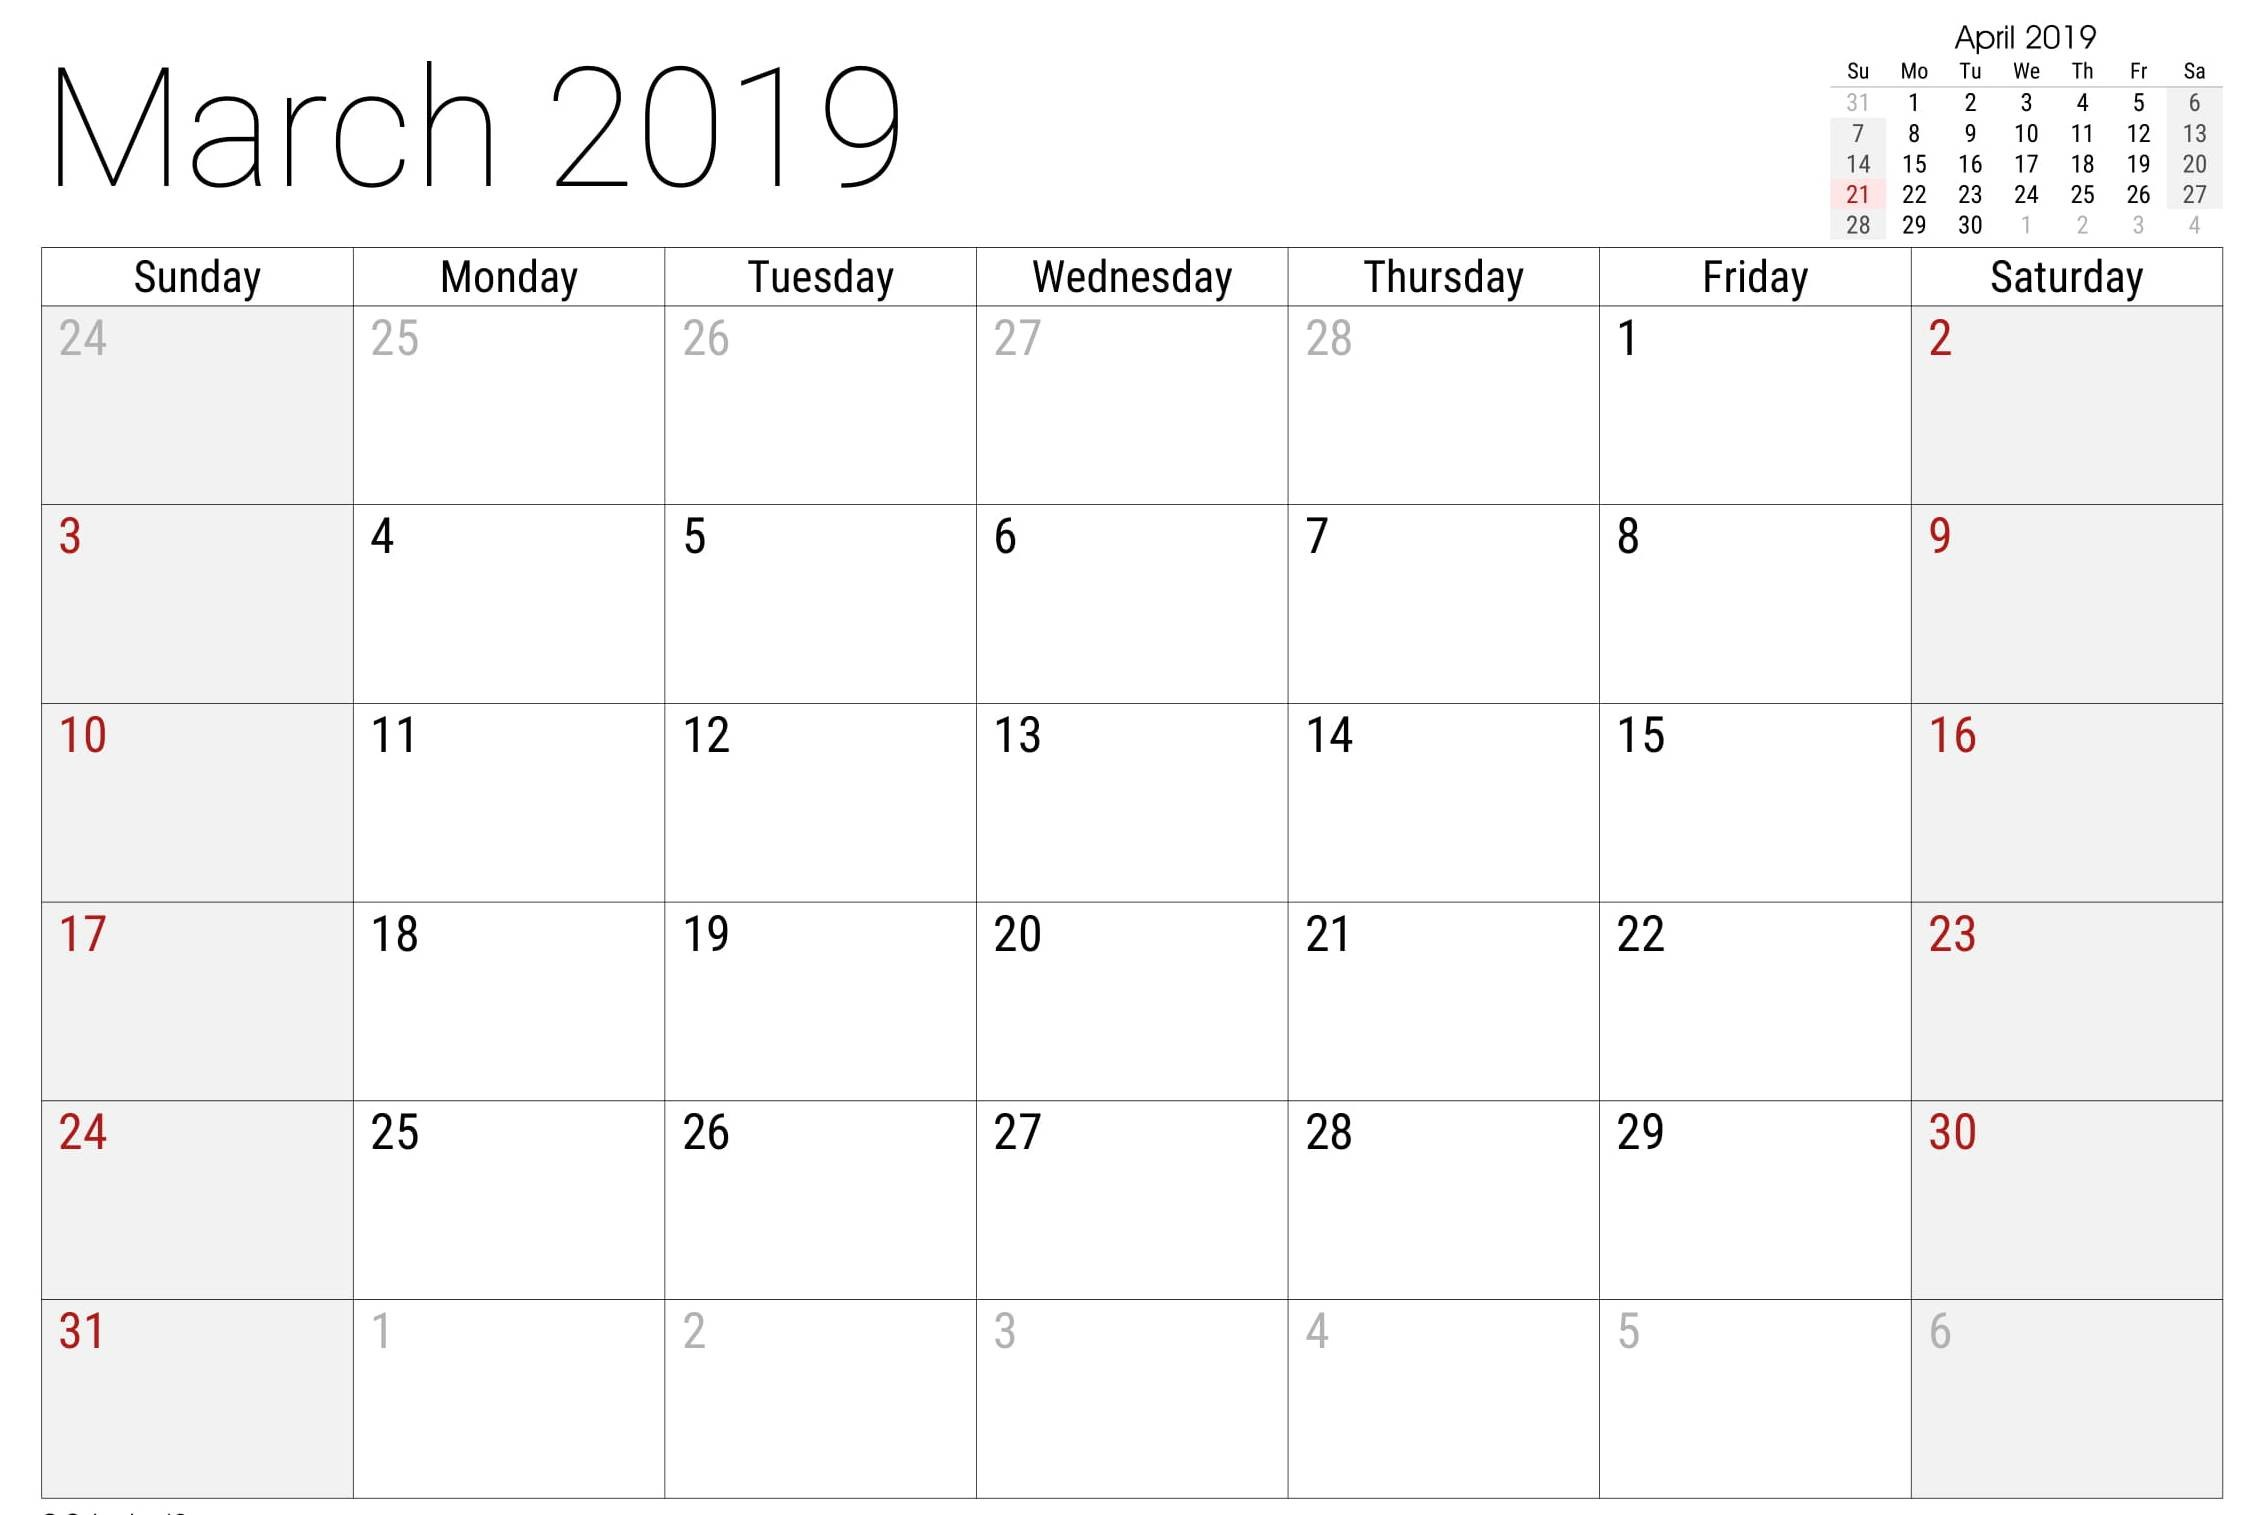 March Calendar 2019 Actual Print March Calendar 2019 – Free Calendar Templates & Worksheets for Of March Calendar 2019 Más Actual Odia Calendar 2019 with March Odishain